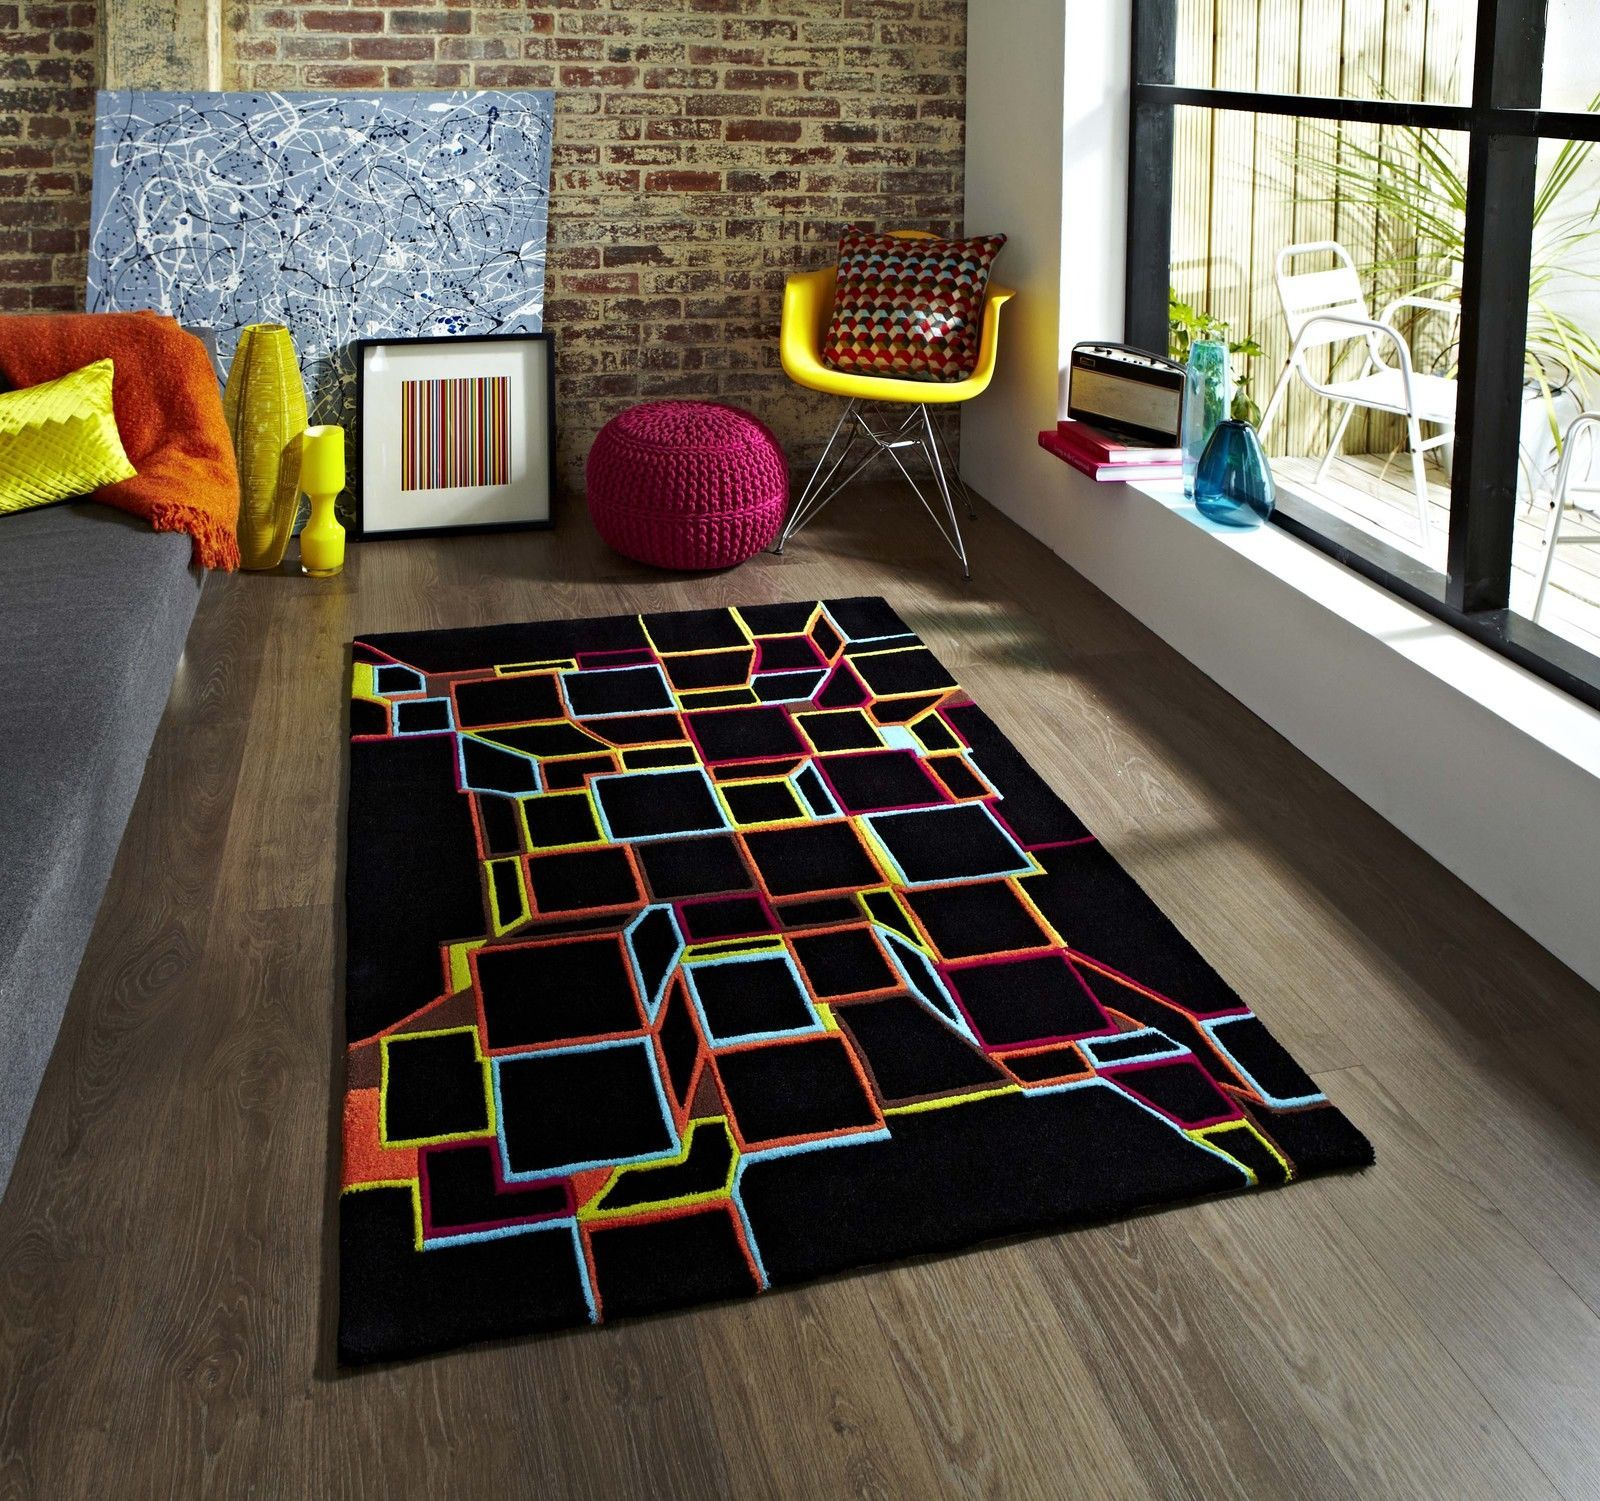 Small Large Pink Rug Cerise Runners Sparkle Modern Thick: Details About SMALL EXTRA LARGE TRENDY ART FUNKY MODERN